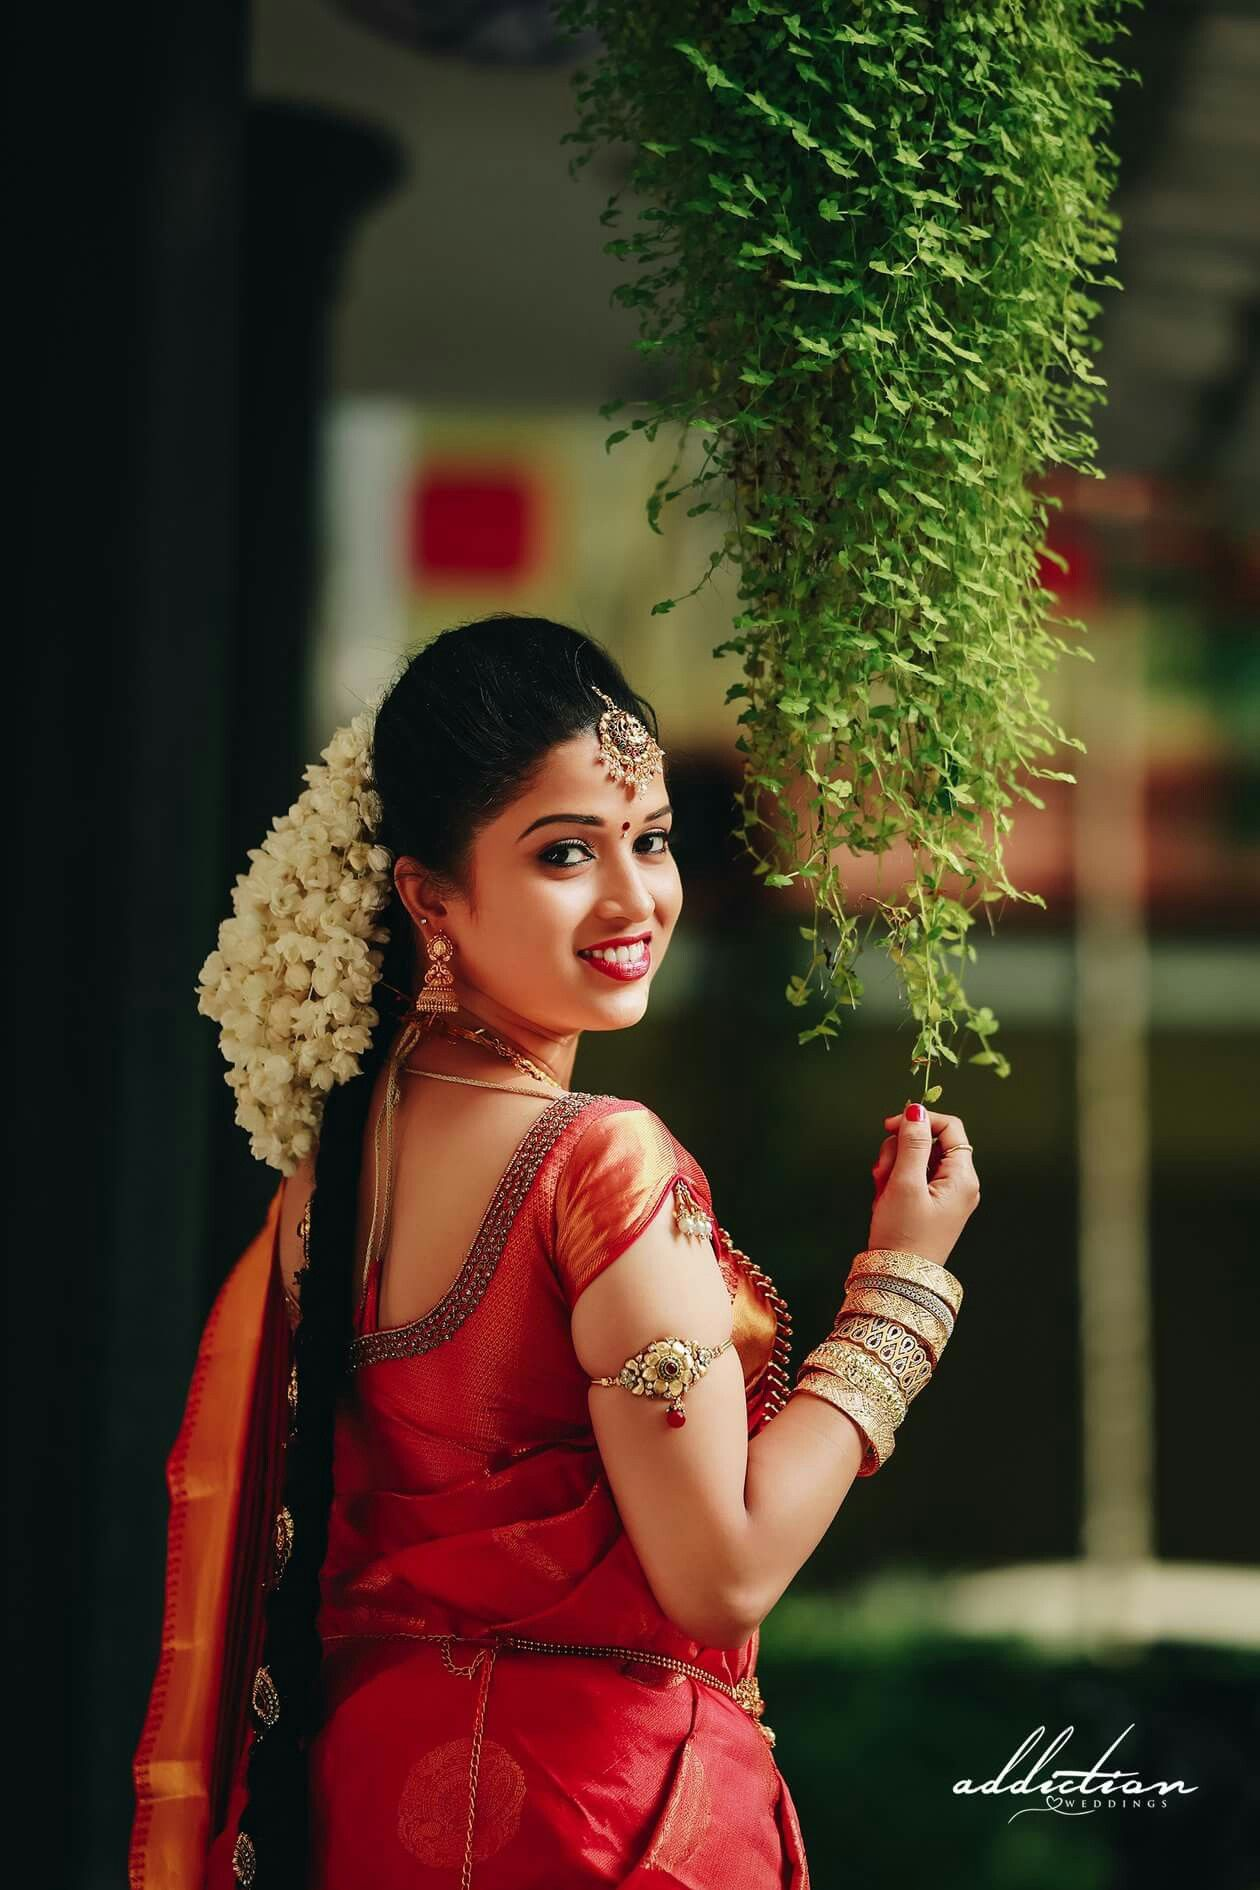 pin by almeena on klicks in 2019 | kerala wedding